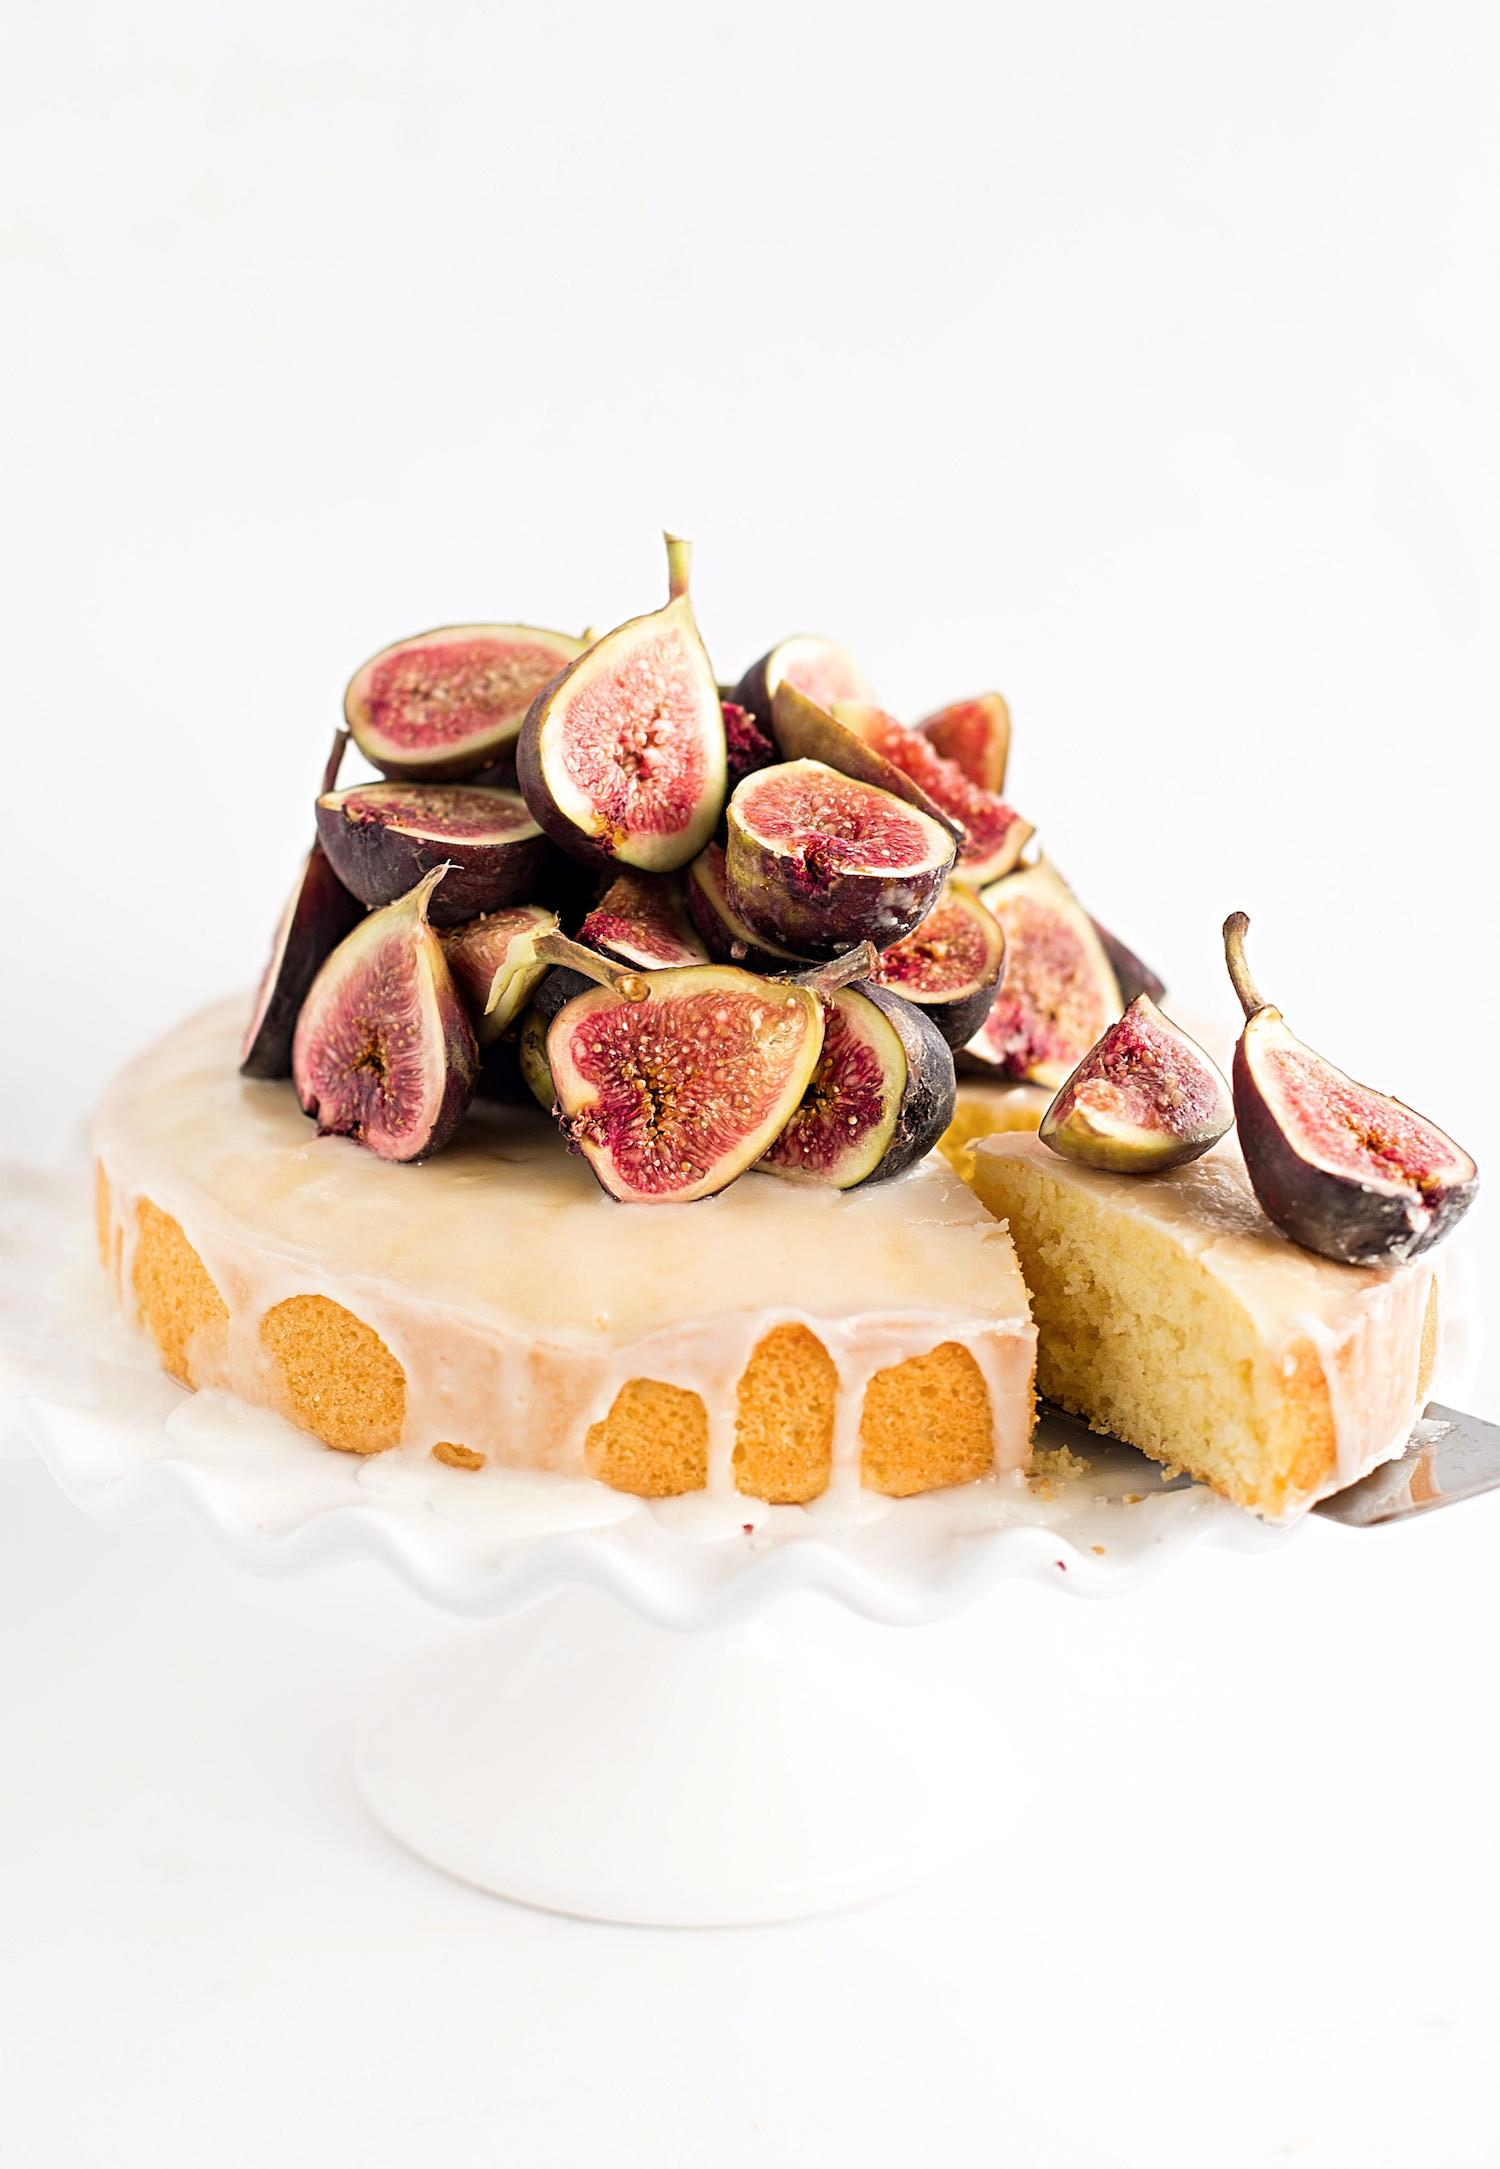 Simple Lemon Cake with Fresh Figs: perfectly moist, tender, and brightly flavored lemon cake topped with fresh figs. Simple and quick! | TrufflesandTrends.com